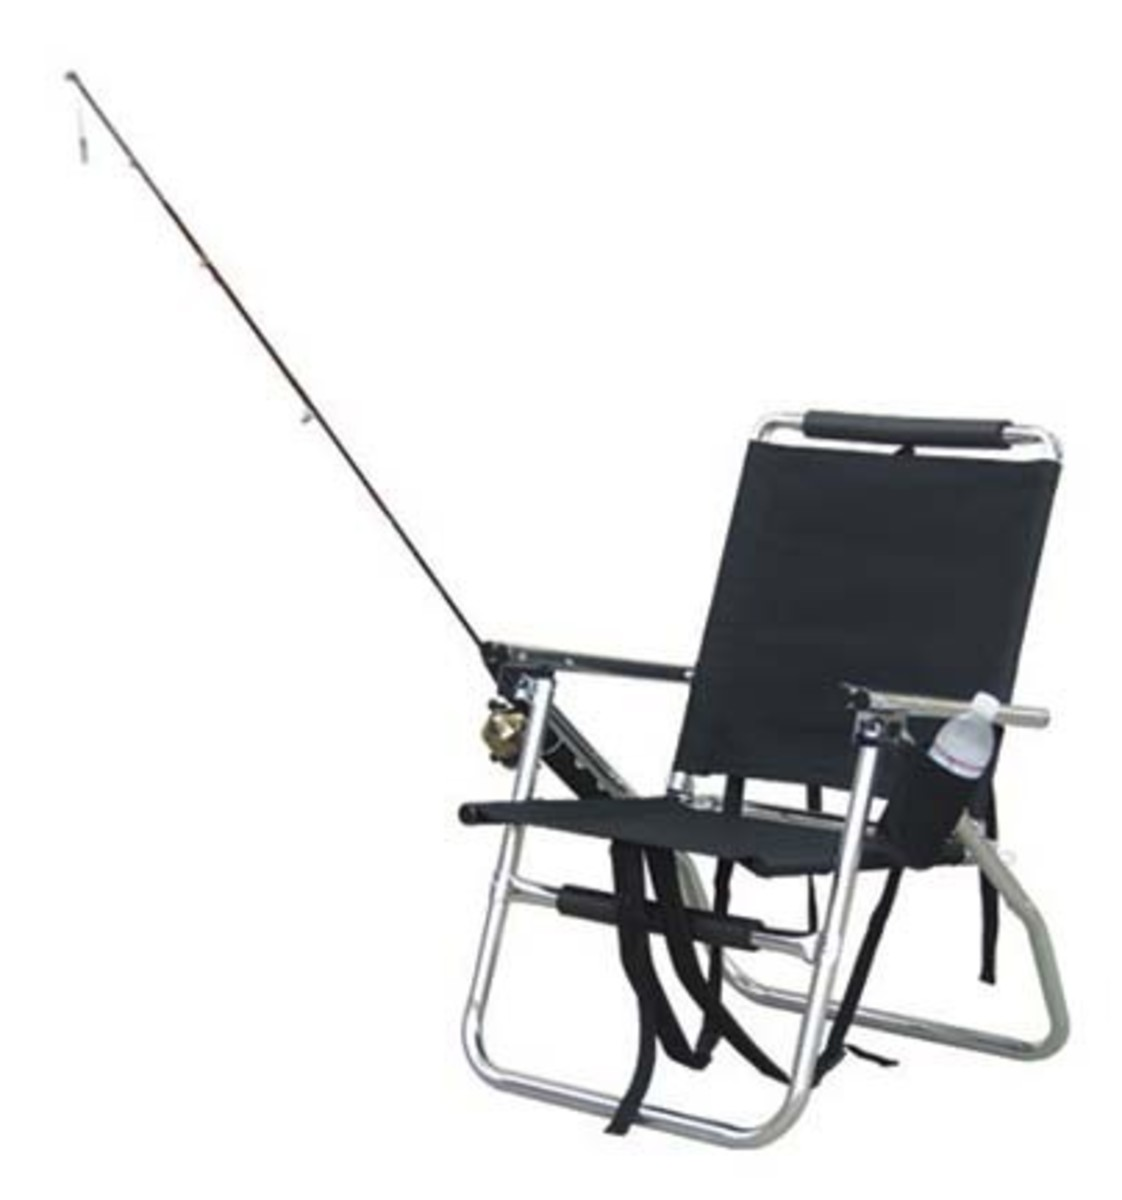 fishing chair with rod holder and cup holder